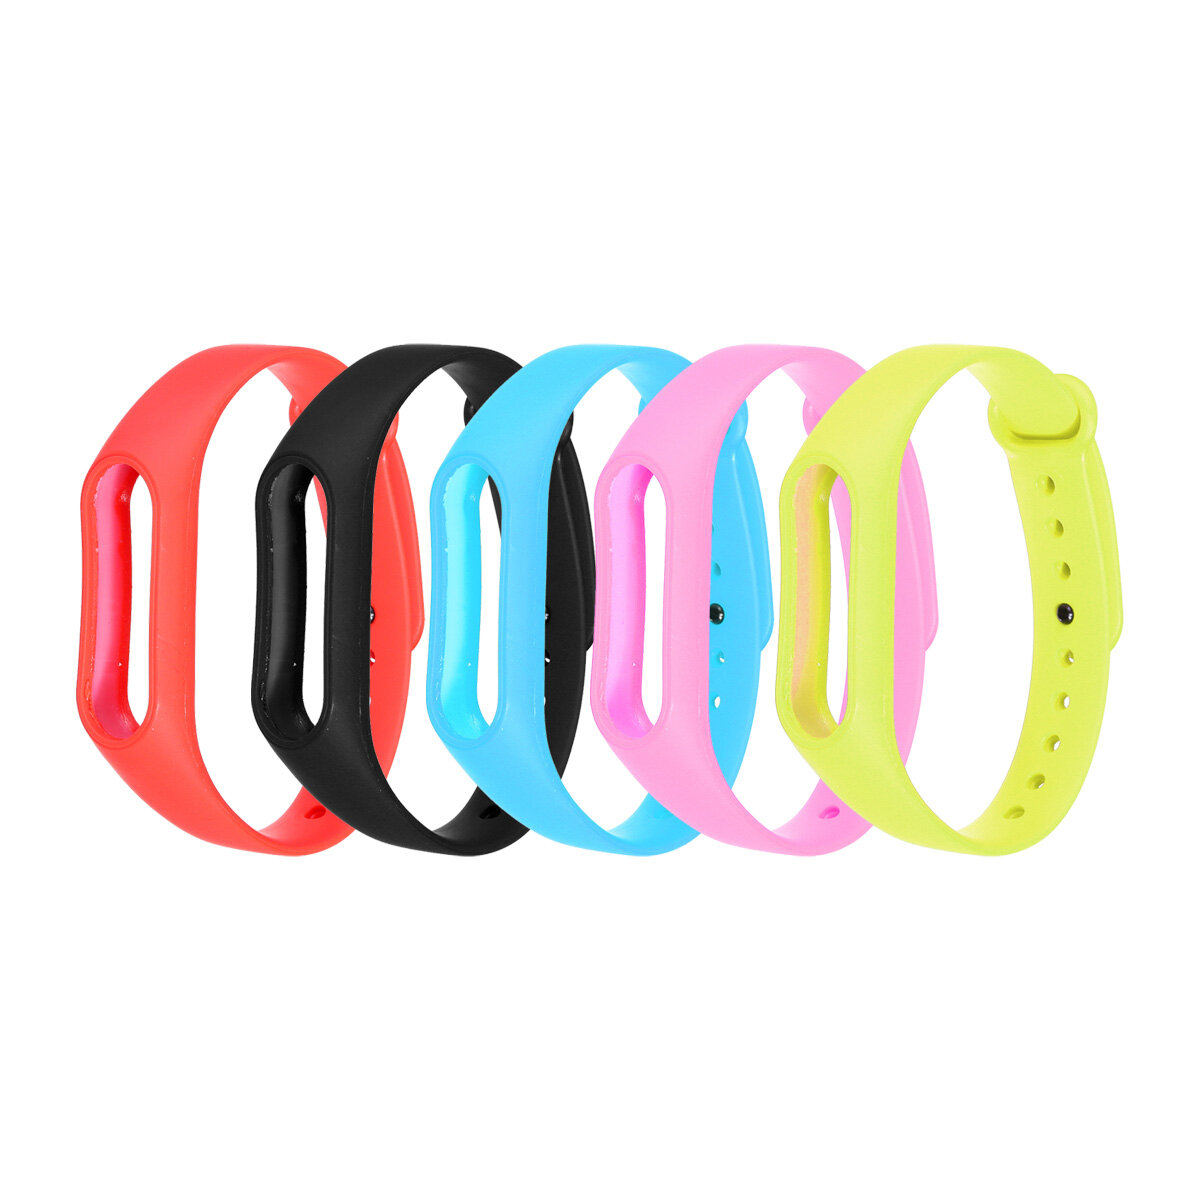 KALOAD Colorful Wristband Watch Band Breathable Sweat Smart Watch Strap Replacement for M2 Smart Watch